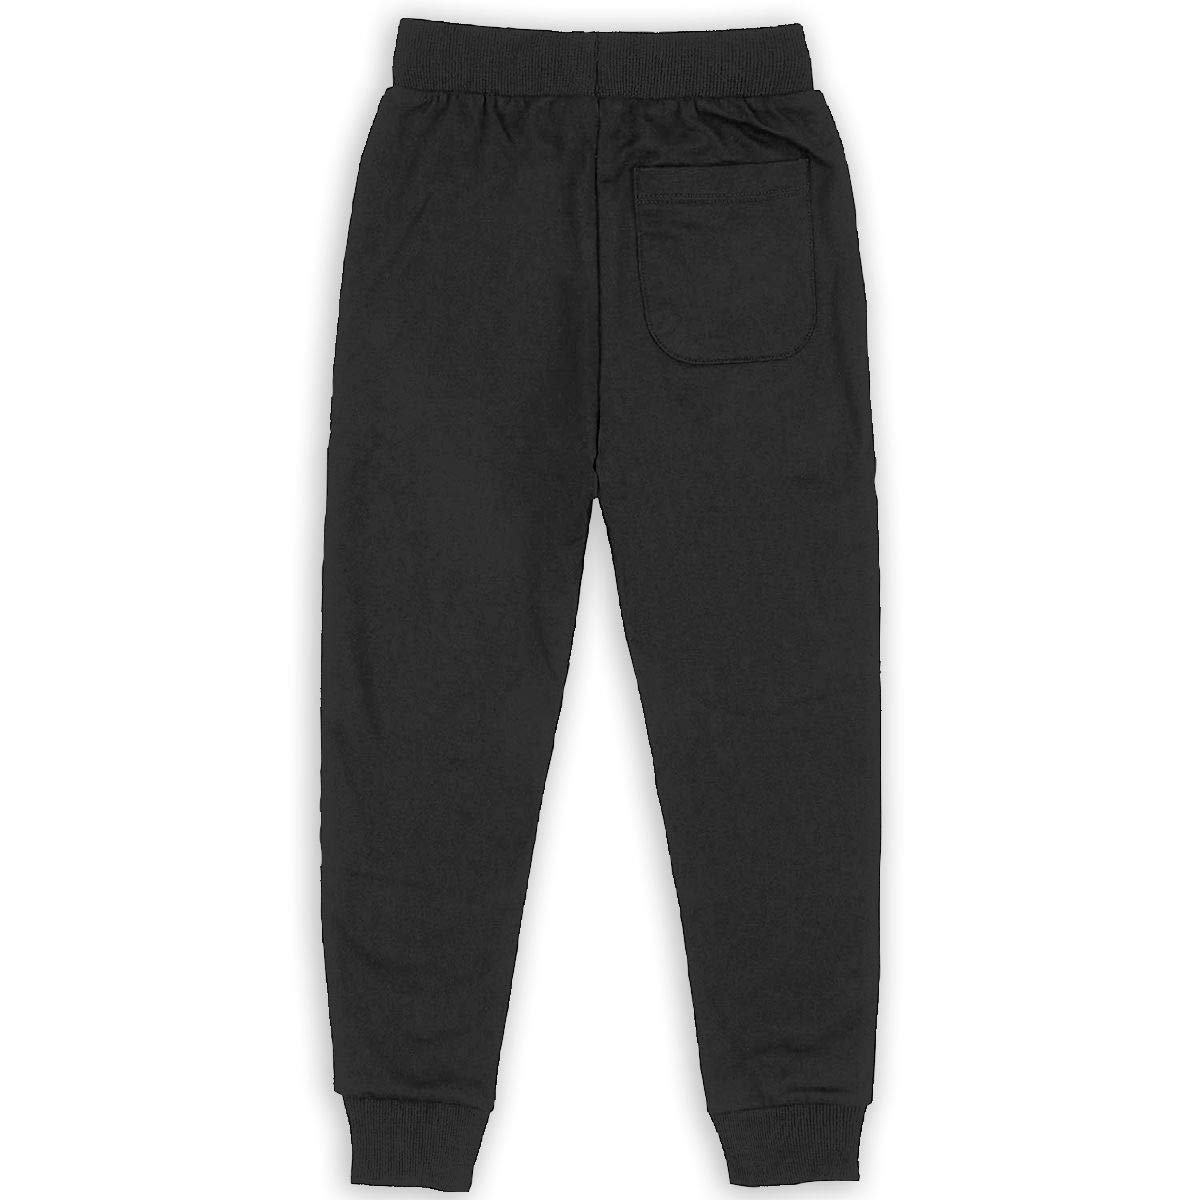 Qinf Boys Sweatpants USA Wrestling Joggers Sport Training Pants Trousers Black